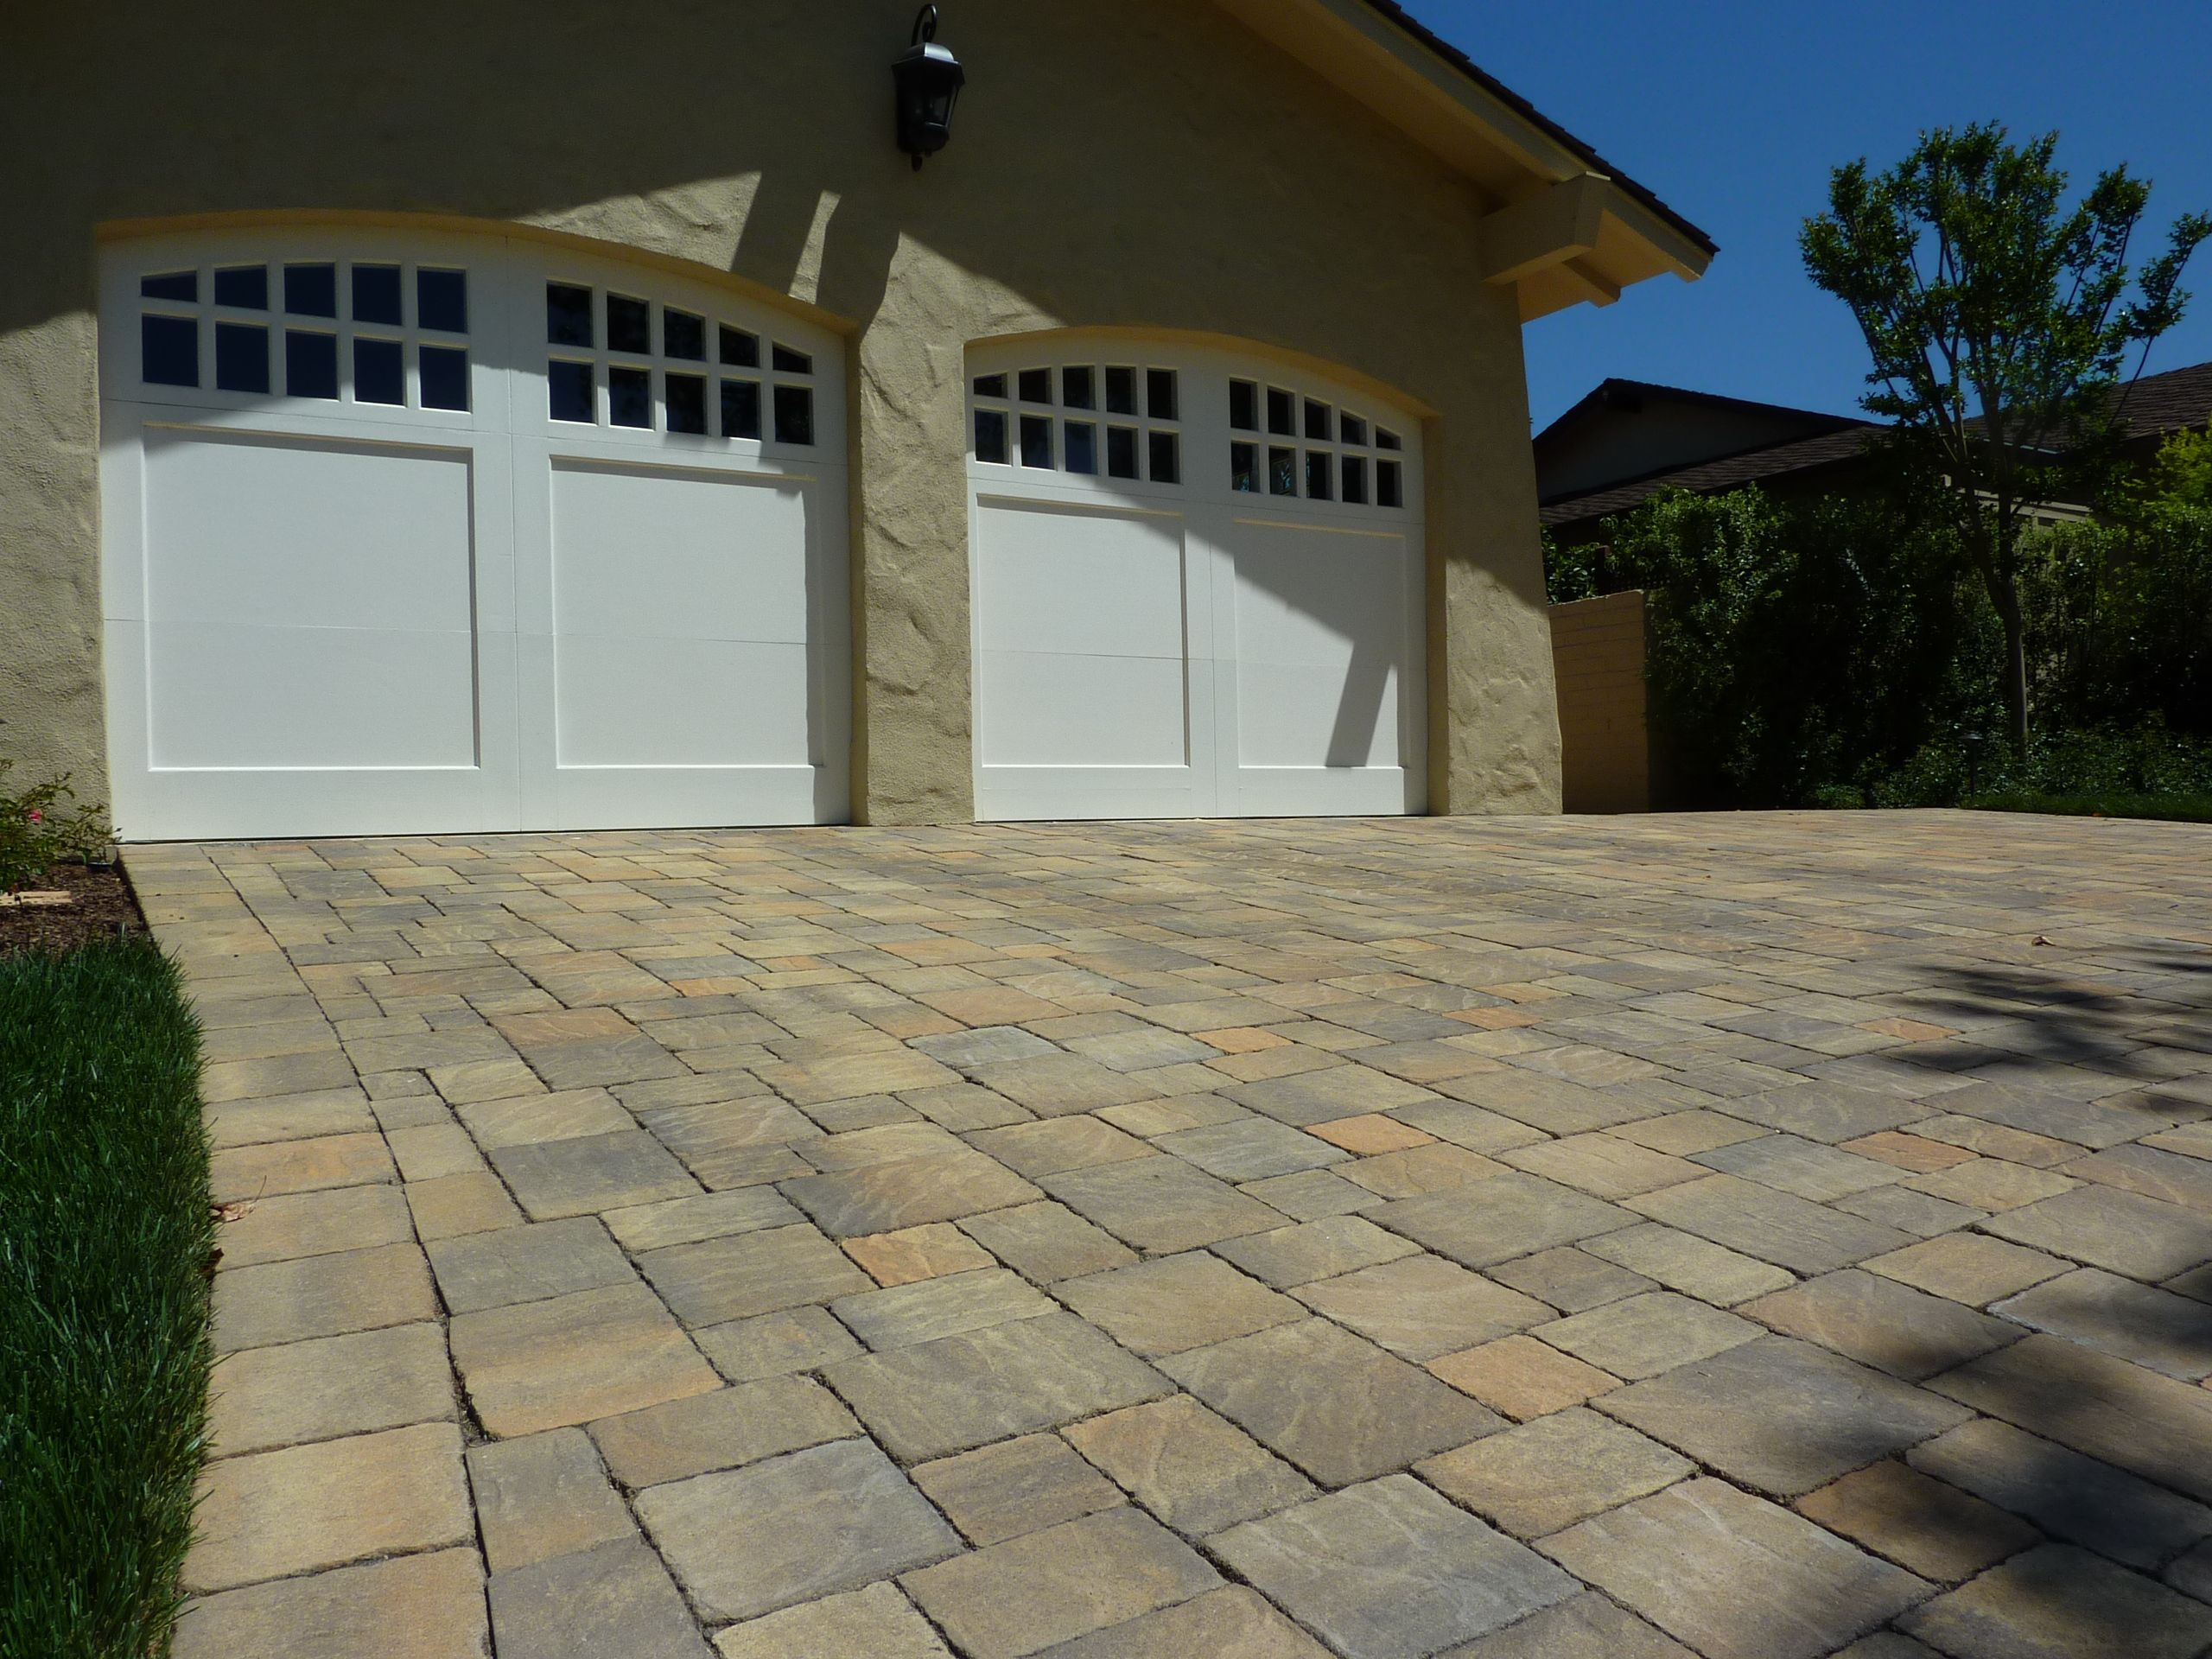 Cambridge pavingstones wall systems color options - Calstone S Quarry Stone Color Rustic Yellowstone